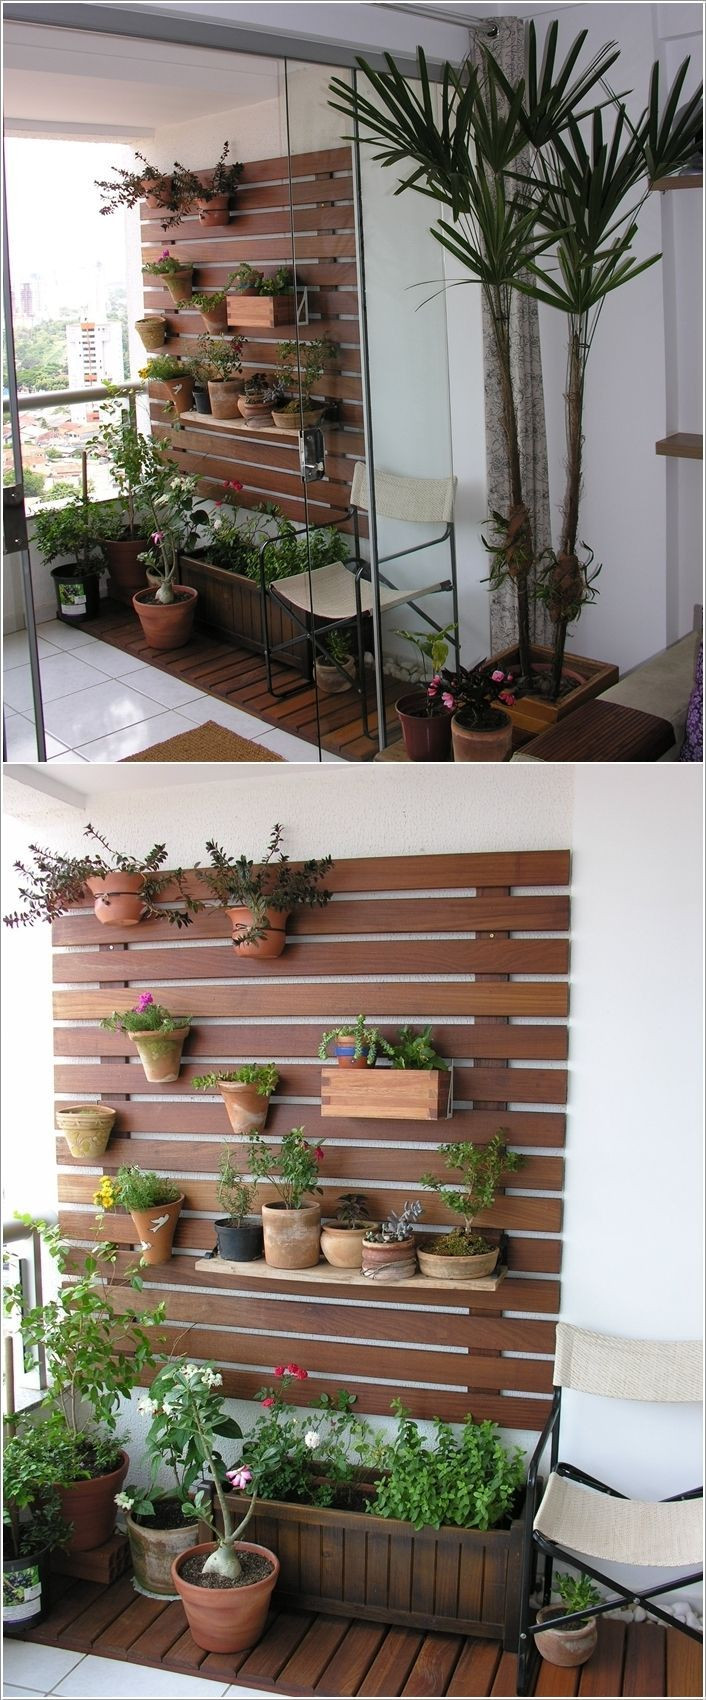 Best ideas about Patio Wall Decor . Save or Pin Best 25 Outdoor wall decorations ideas on Pinterest Now.